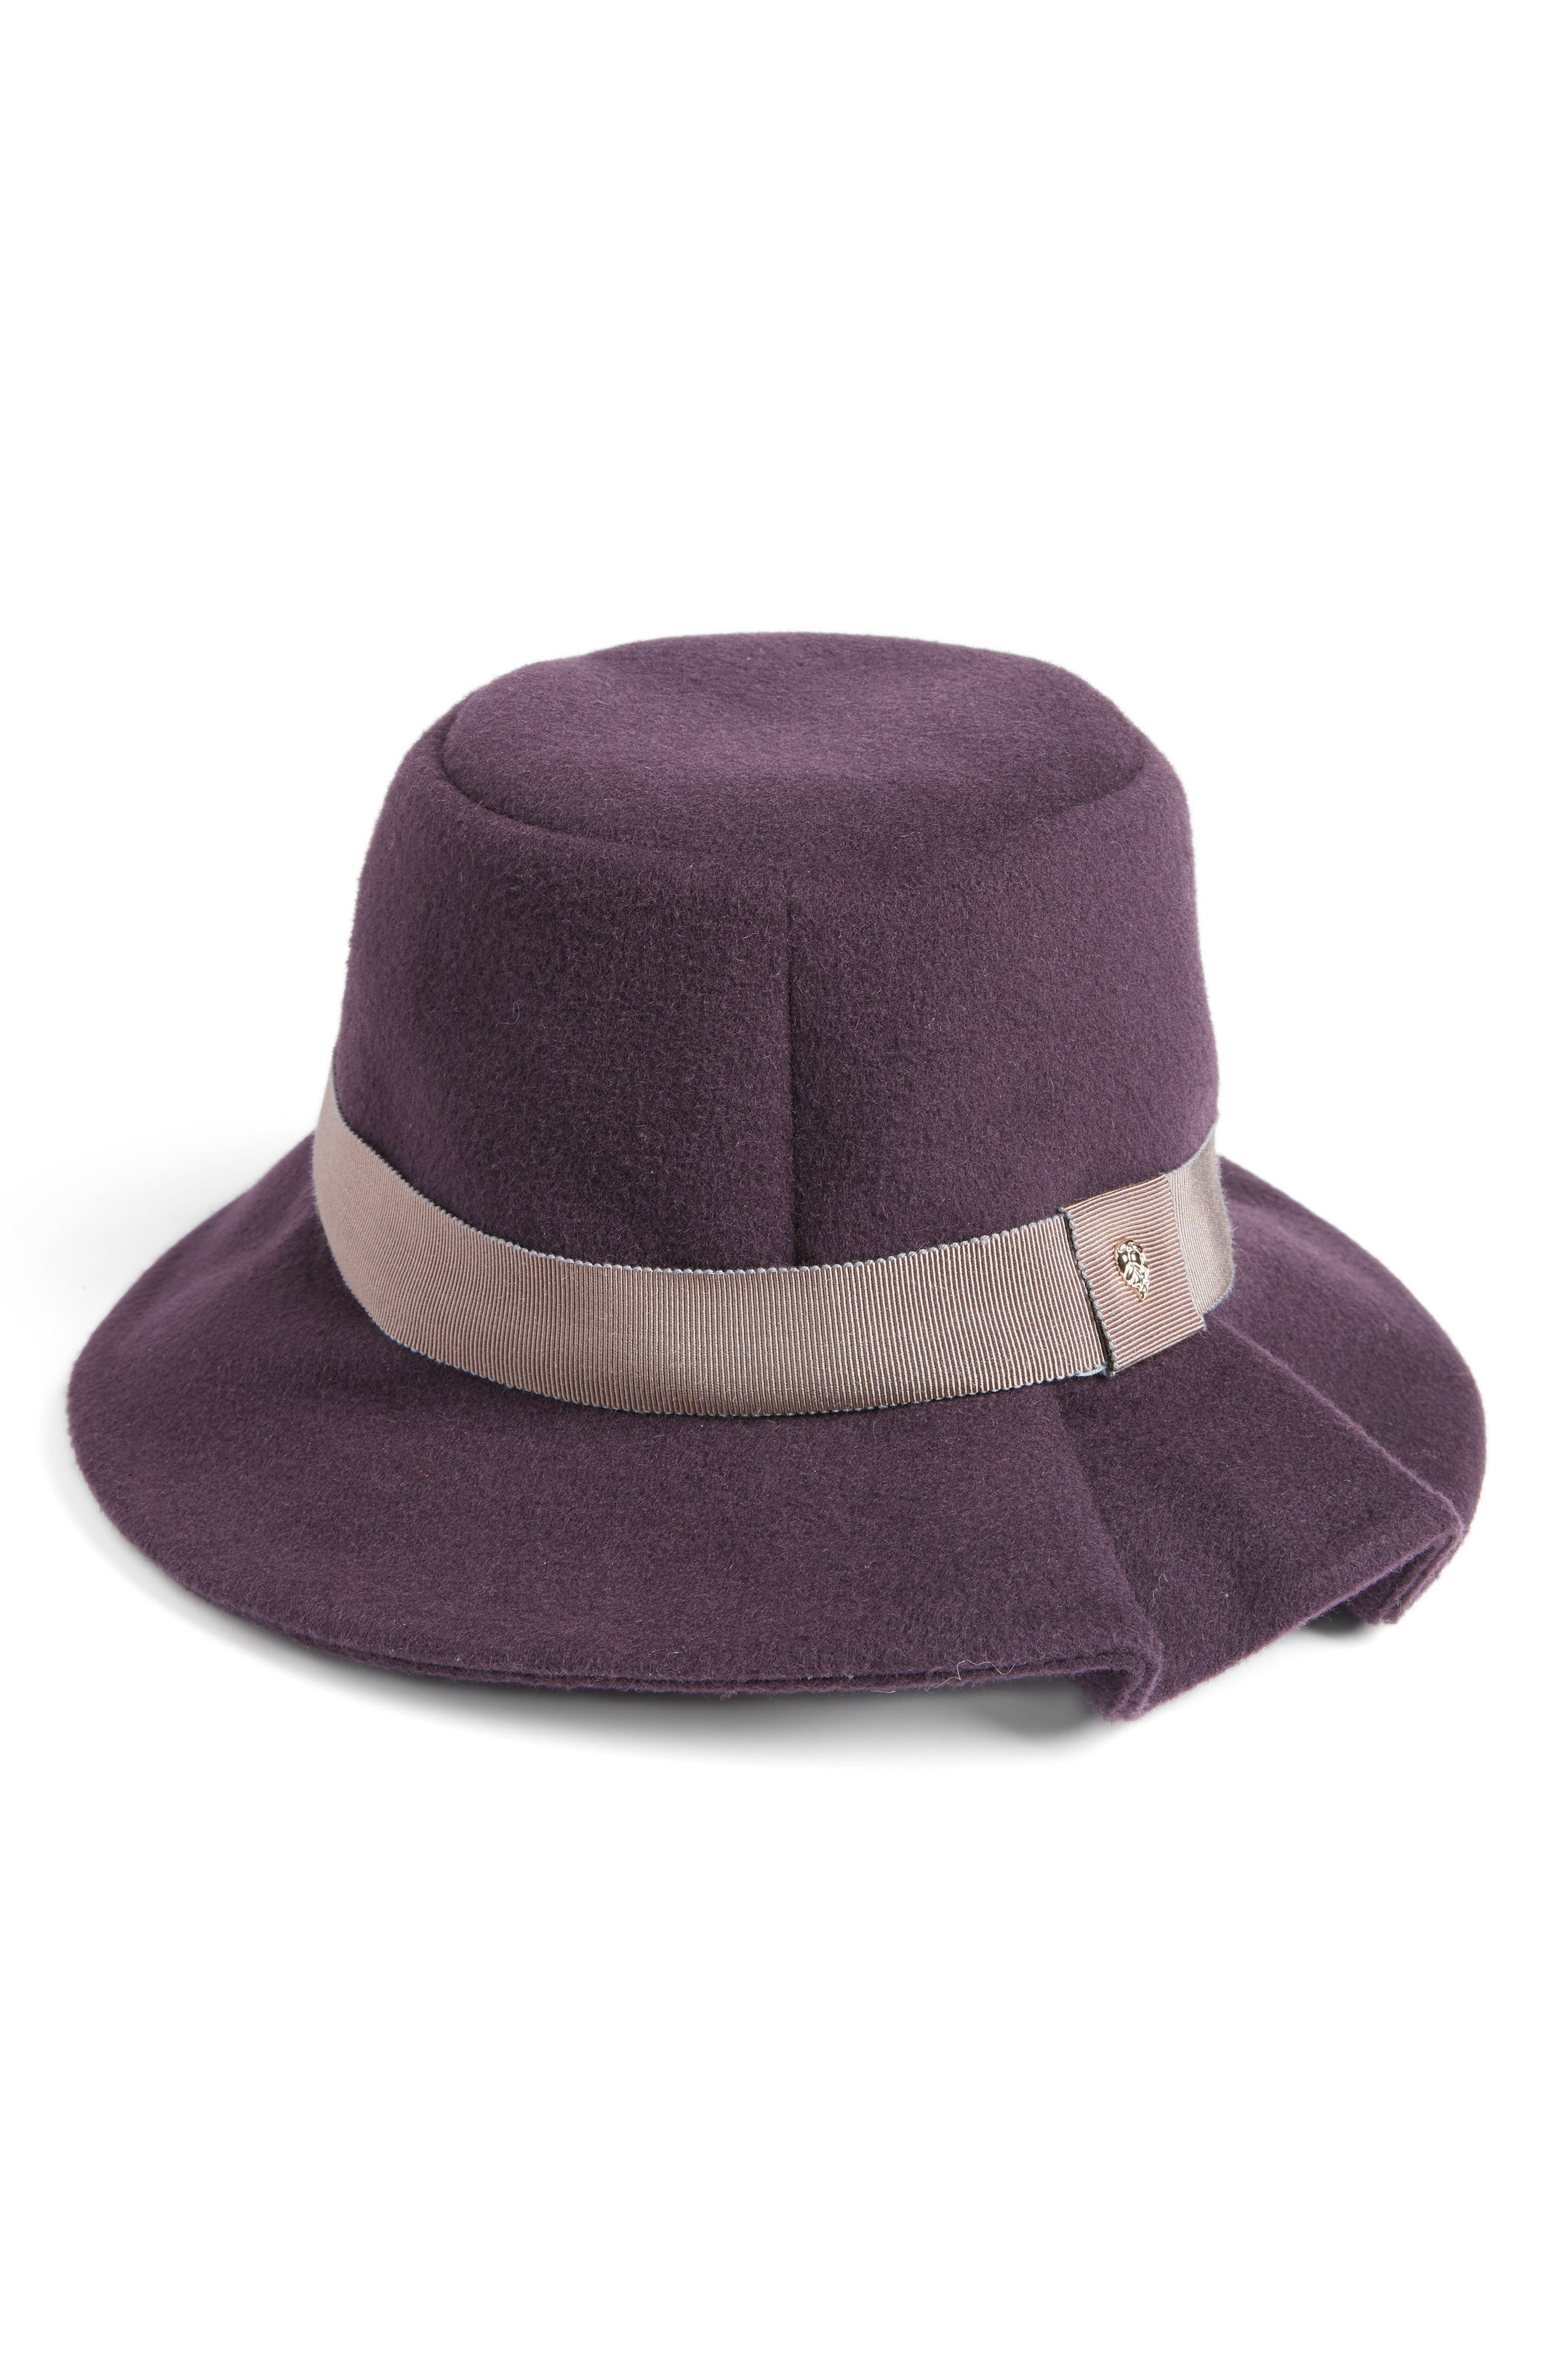 Luxe Tapered Bucket Hat,                         Main,                         color, Aubergine